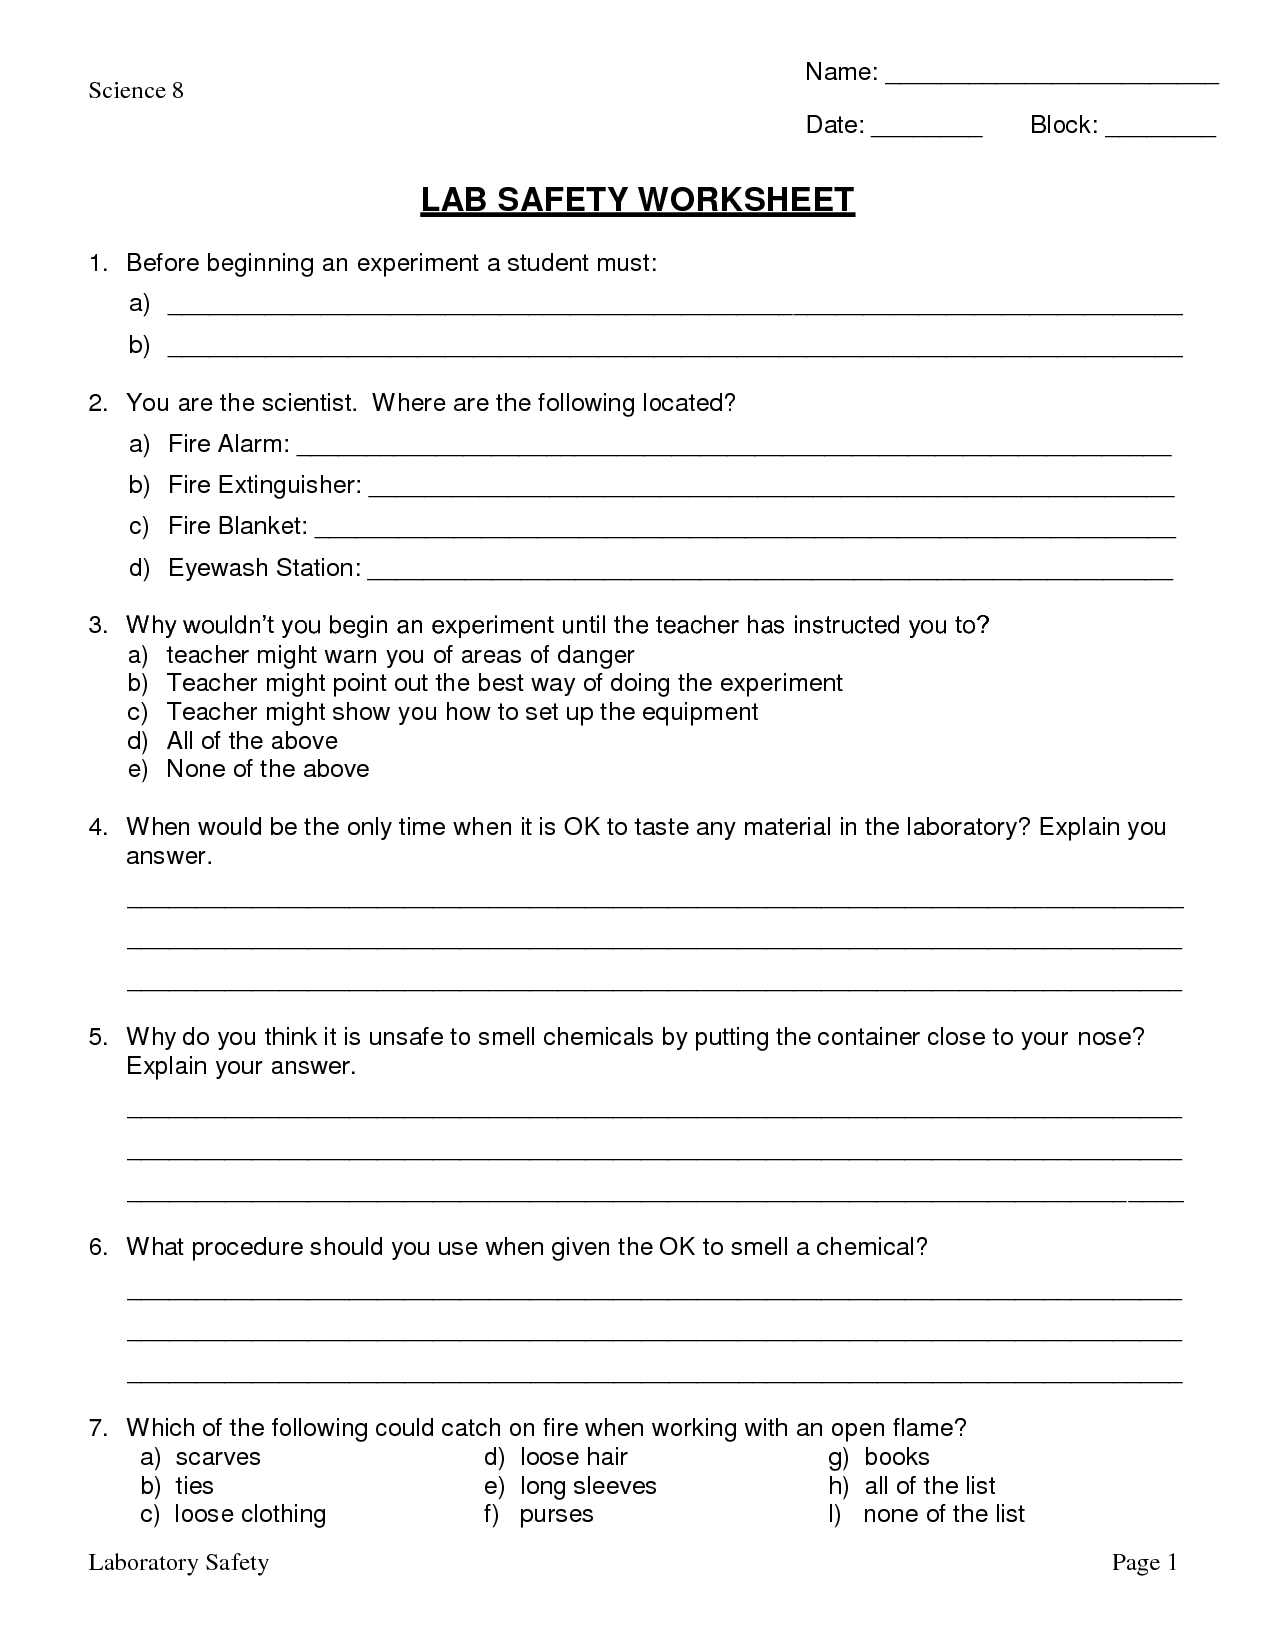 Worksheets Science Lab Safety Worksheet pin by zaiba ali on classroom pinterest lab safety see 6 best images of printable worksheet